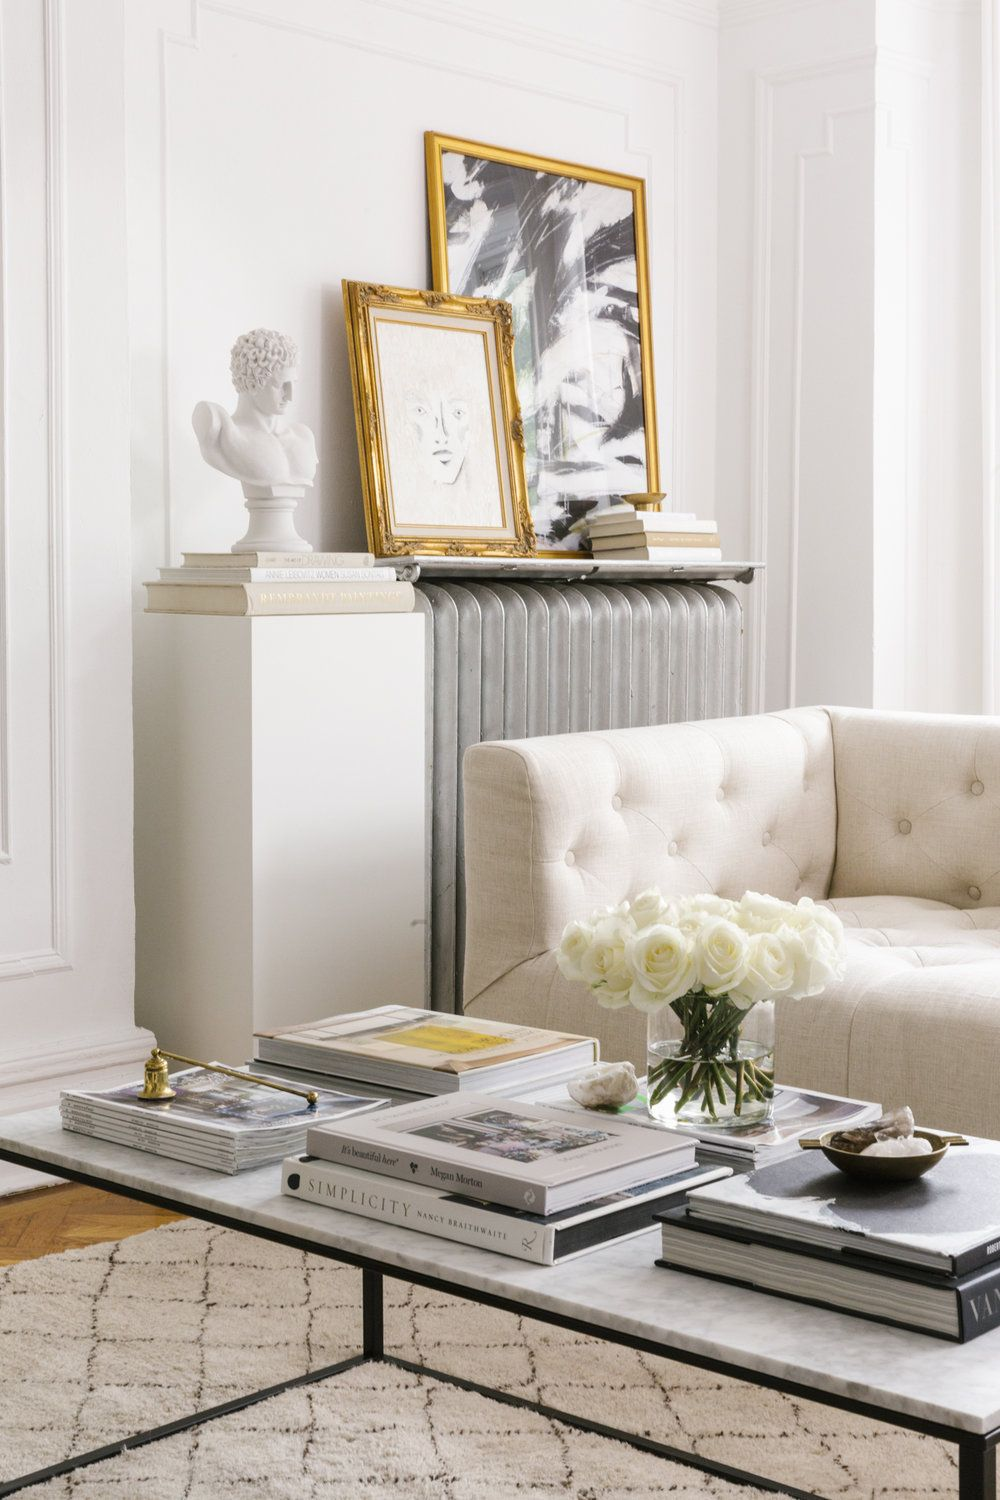 Fenimore Flat Shelby Girard Inspired Homes Living Room Coffee